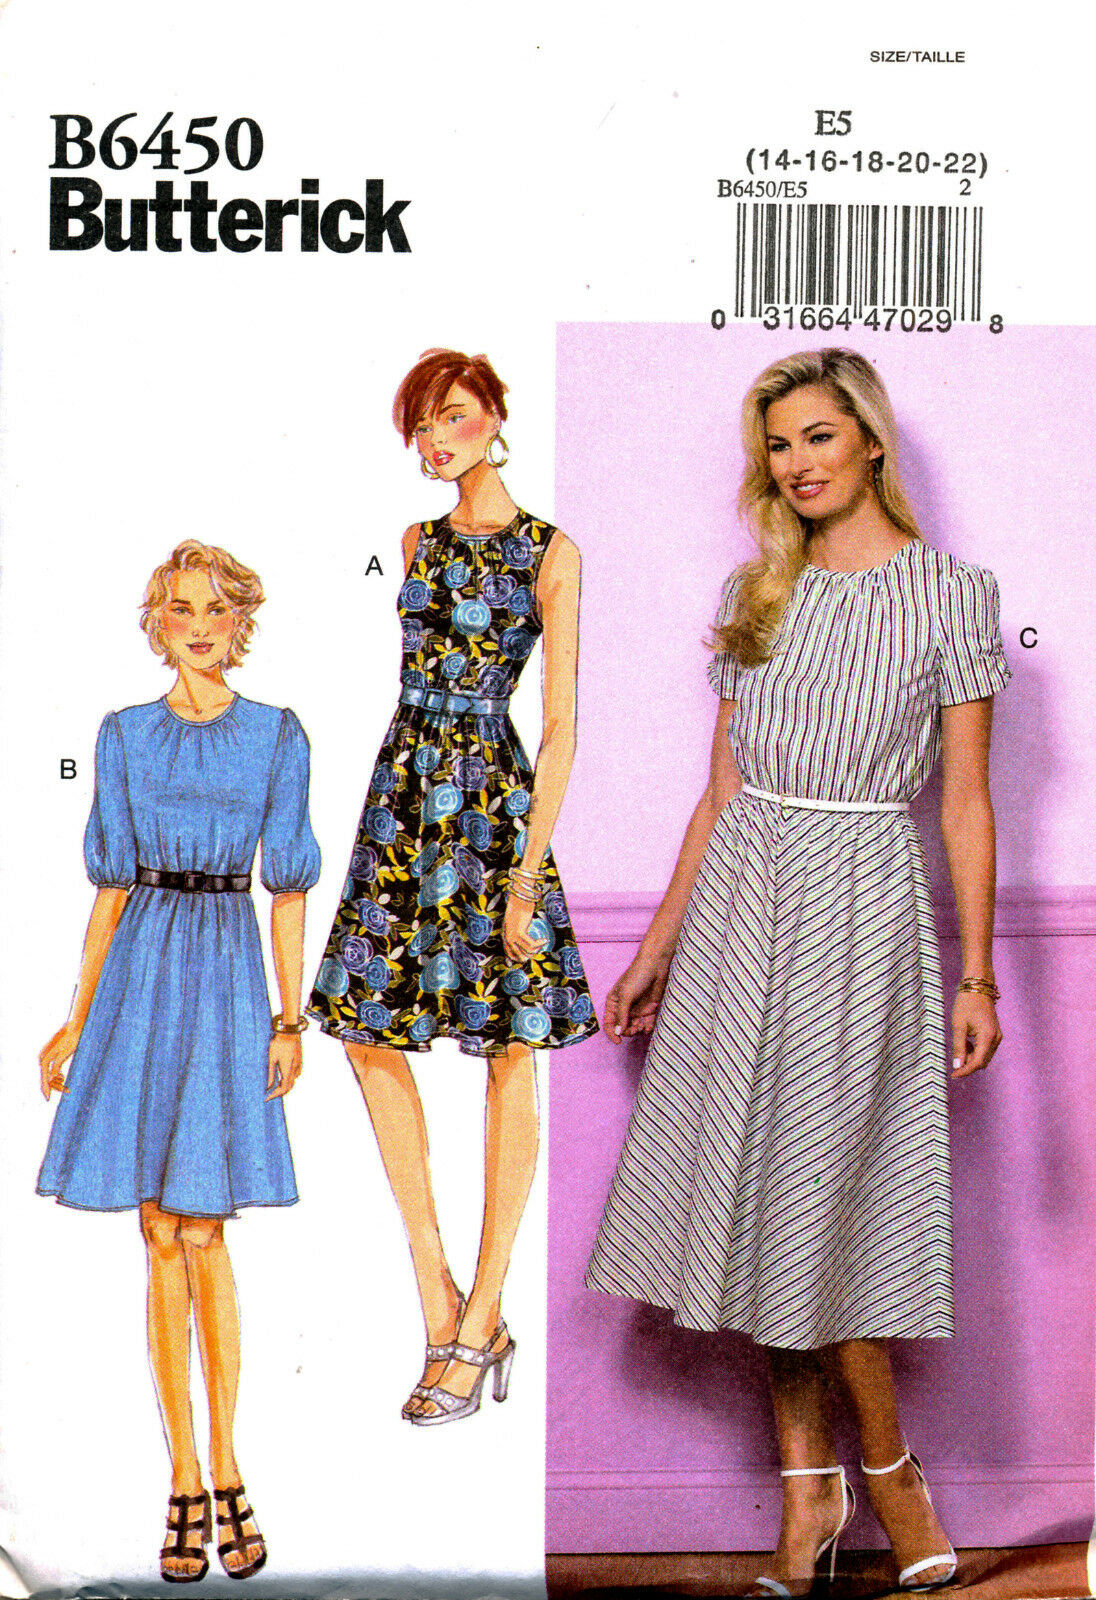 BUTTERICK SEWING PATTERN 6450 MISSES 14-22 SEMI-FITTED DRESS WITH SLEEVE OPTIONS